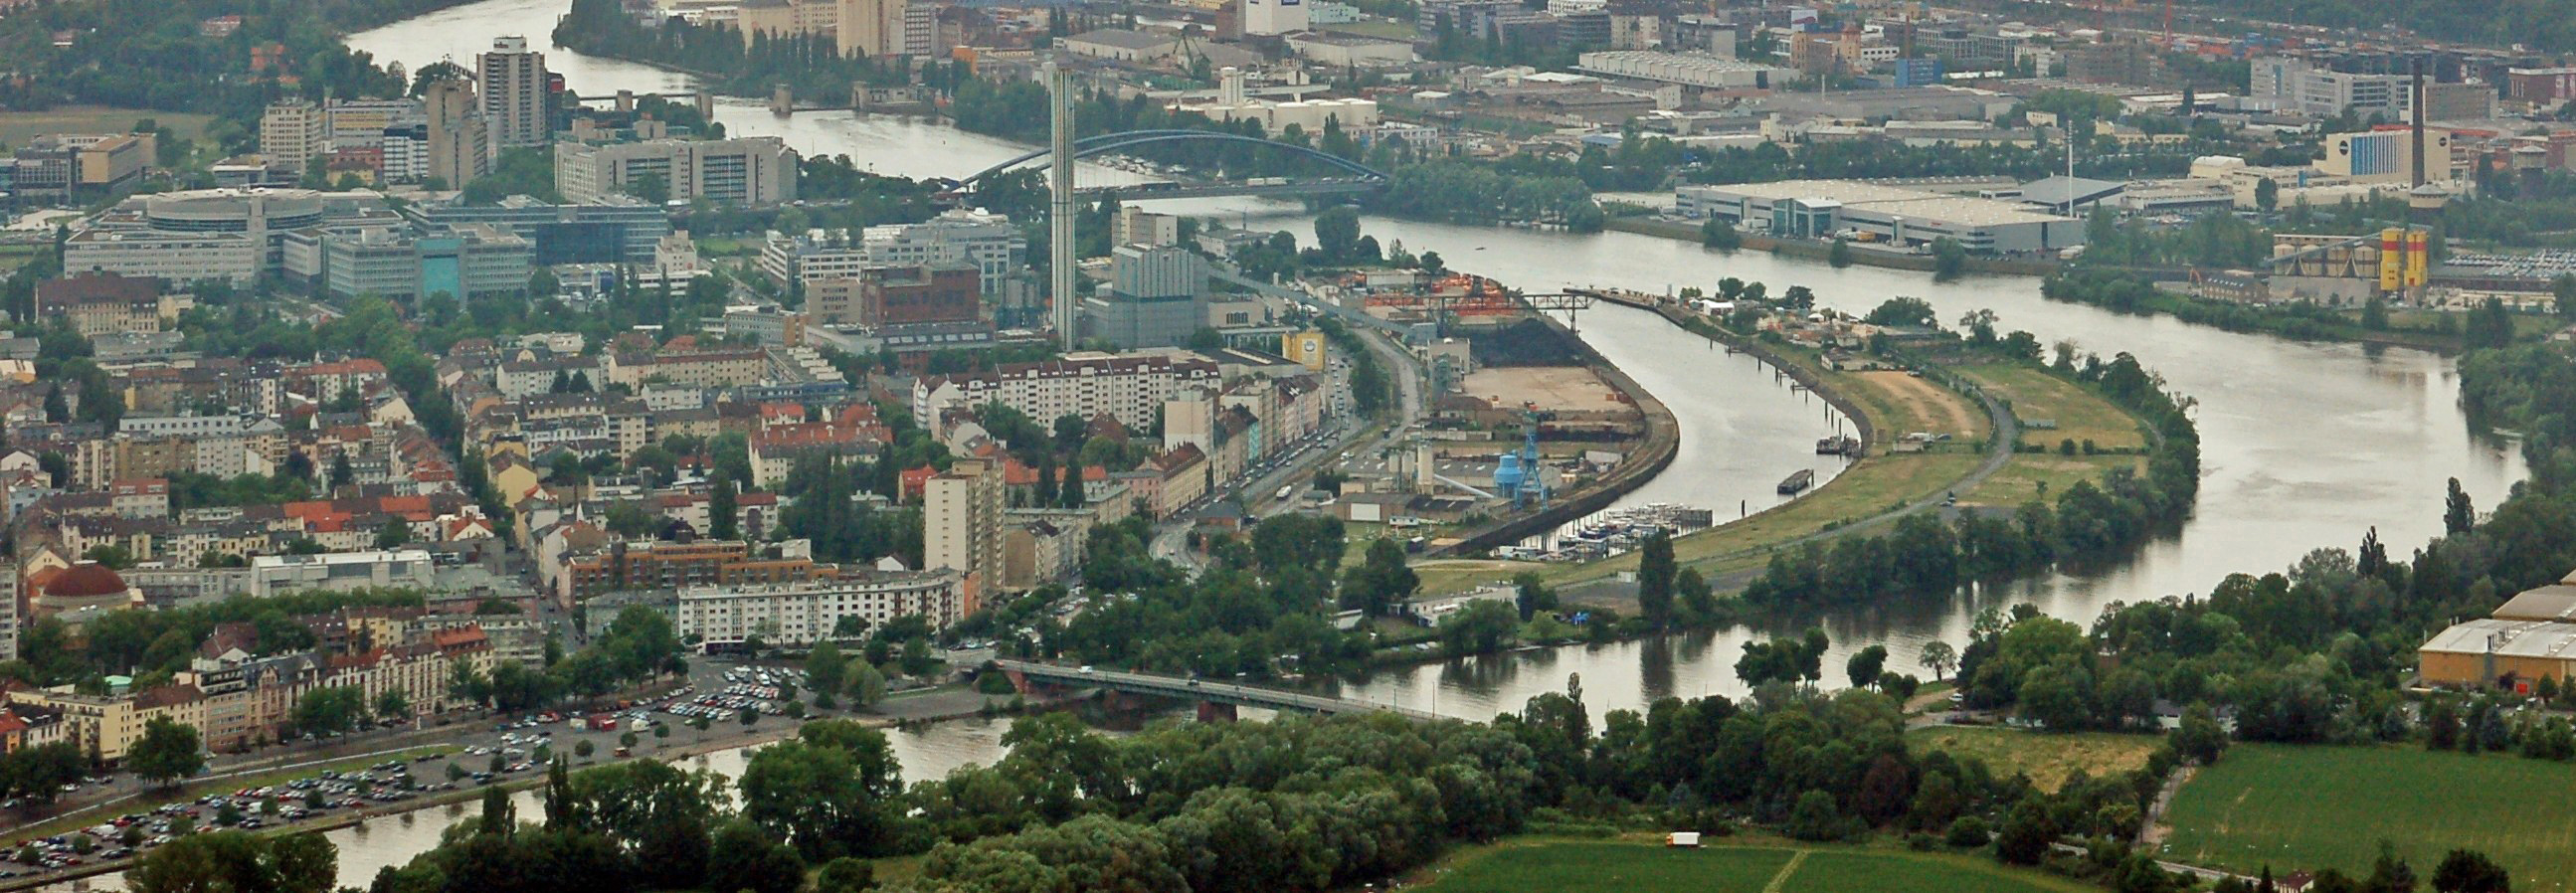 File hafen offenbach am main wikimedia commons for Werbeagentur offenbach am main